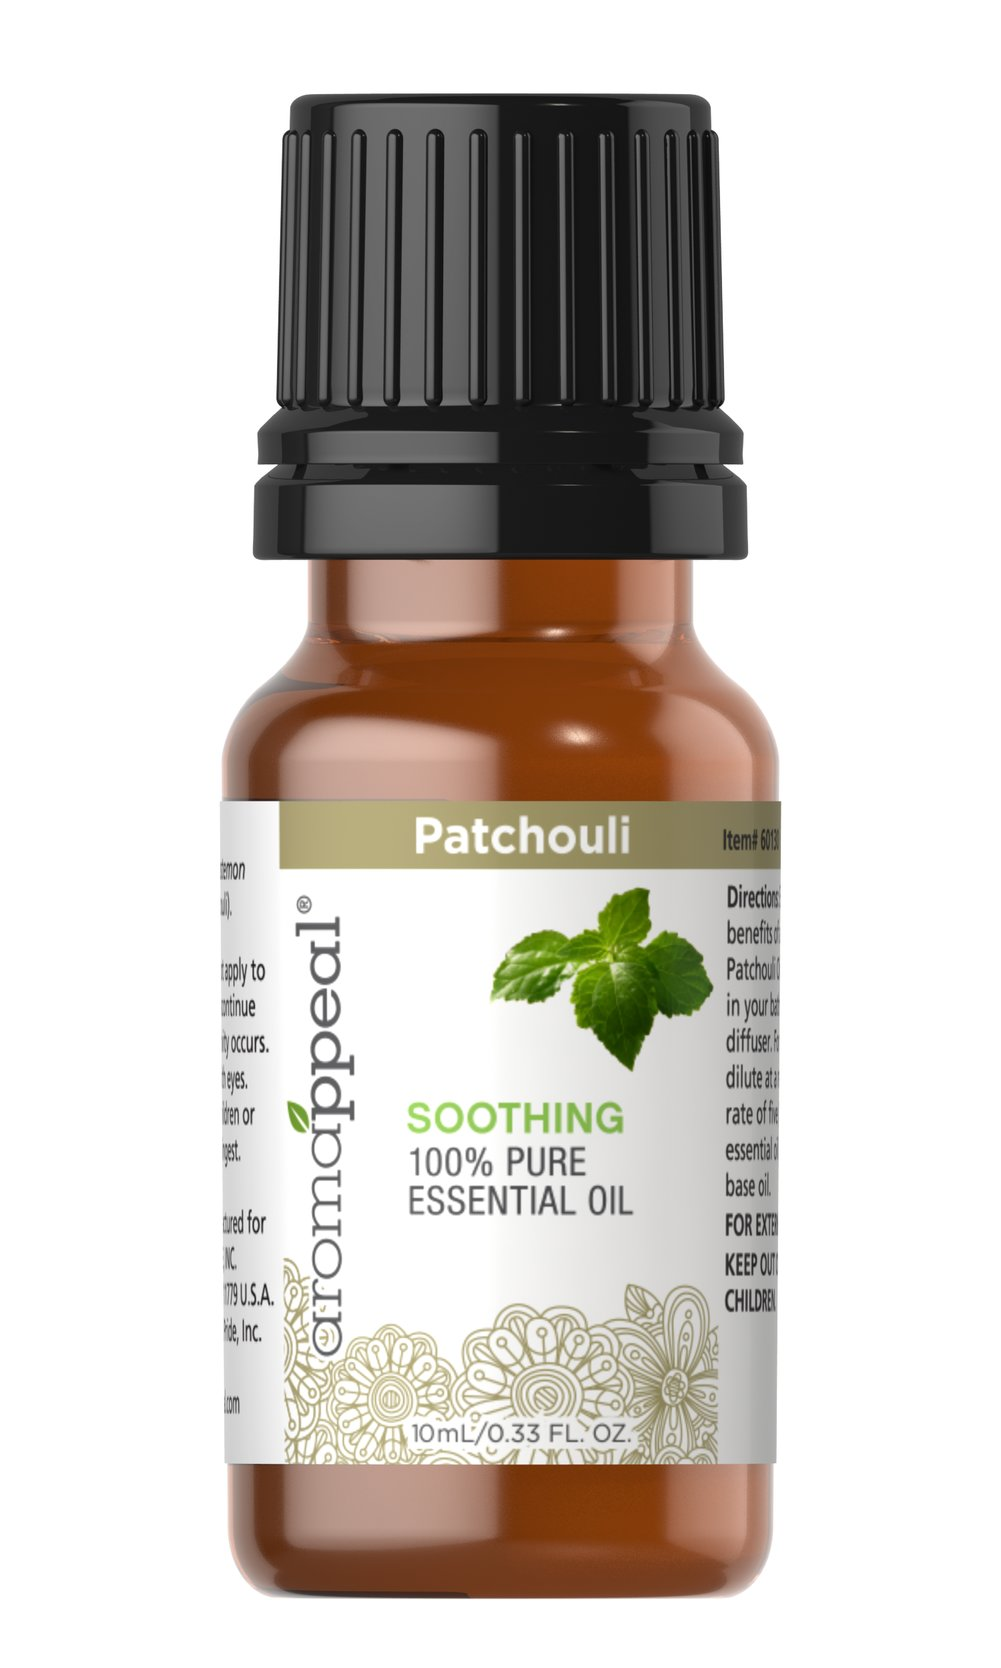 "Patchouli 100% Pure Essential Oil <p>Distinguished by its sweetly rich, earthy scent, Patchouli can set the scene for a quietly meditative aromatherapy encounter.</p><ul><li><span class=""bold-pink"">Traditional Uses:</span> Tranquility, serenity, and meditation.<br /></li><li><span class=""bold-pink"">History:</span>  Distinguished by its sweetly rich, earthy scent, Patchouli can set the  scene for a quietly medit"